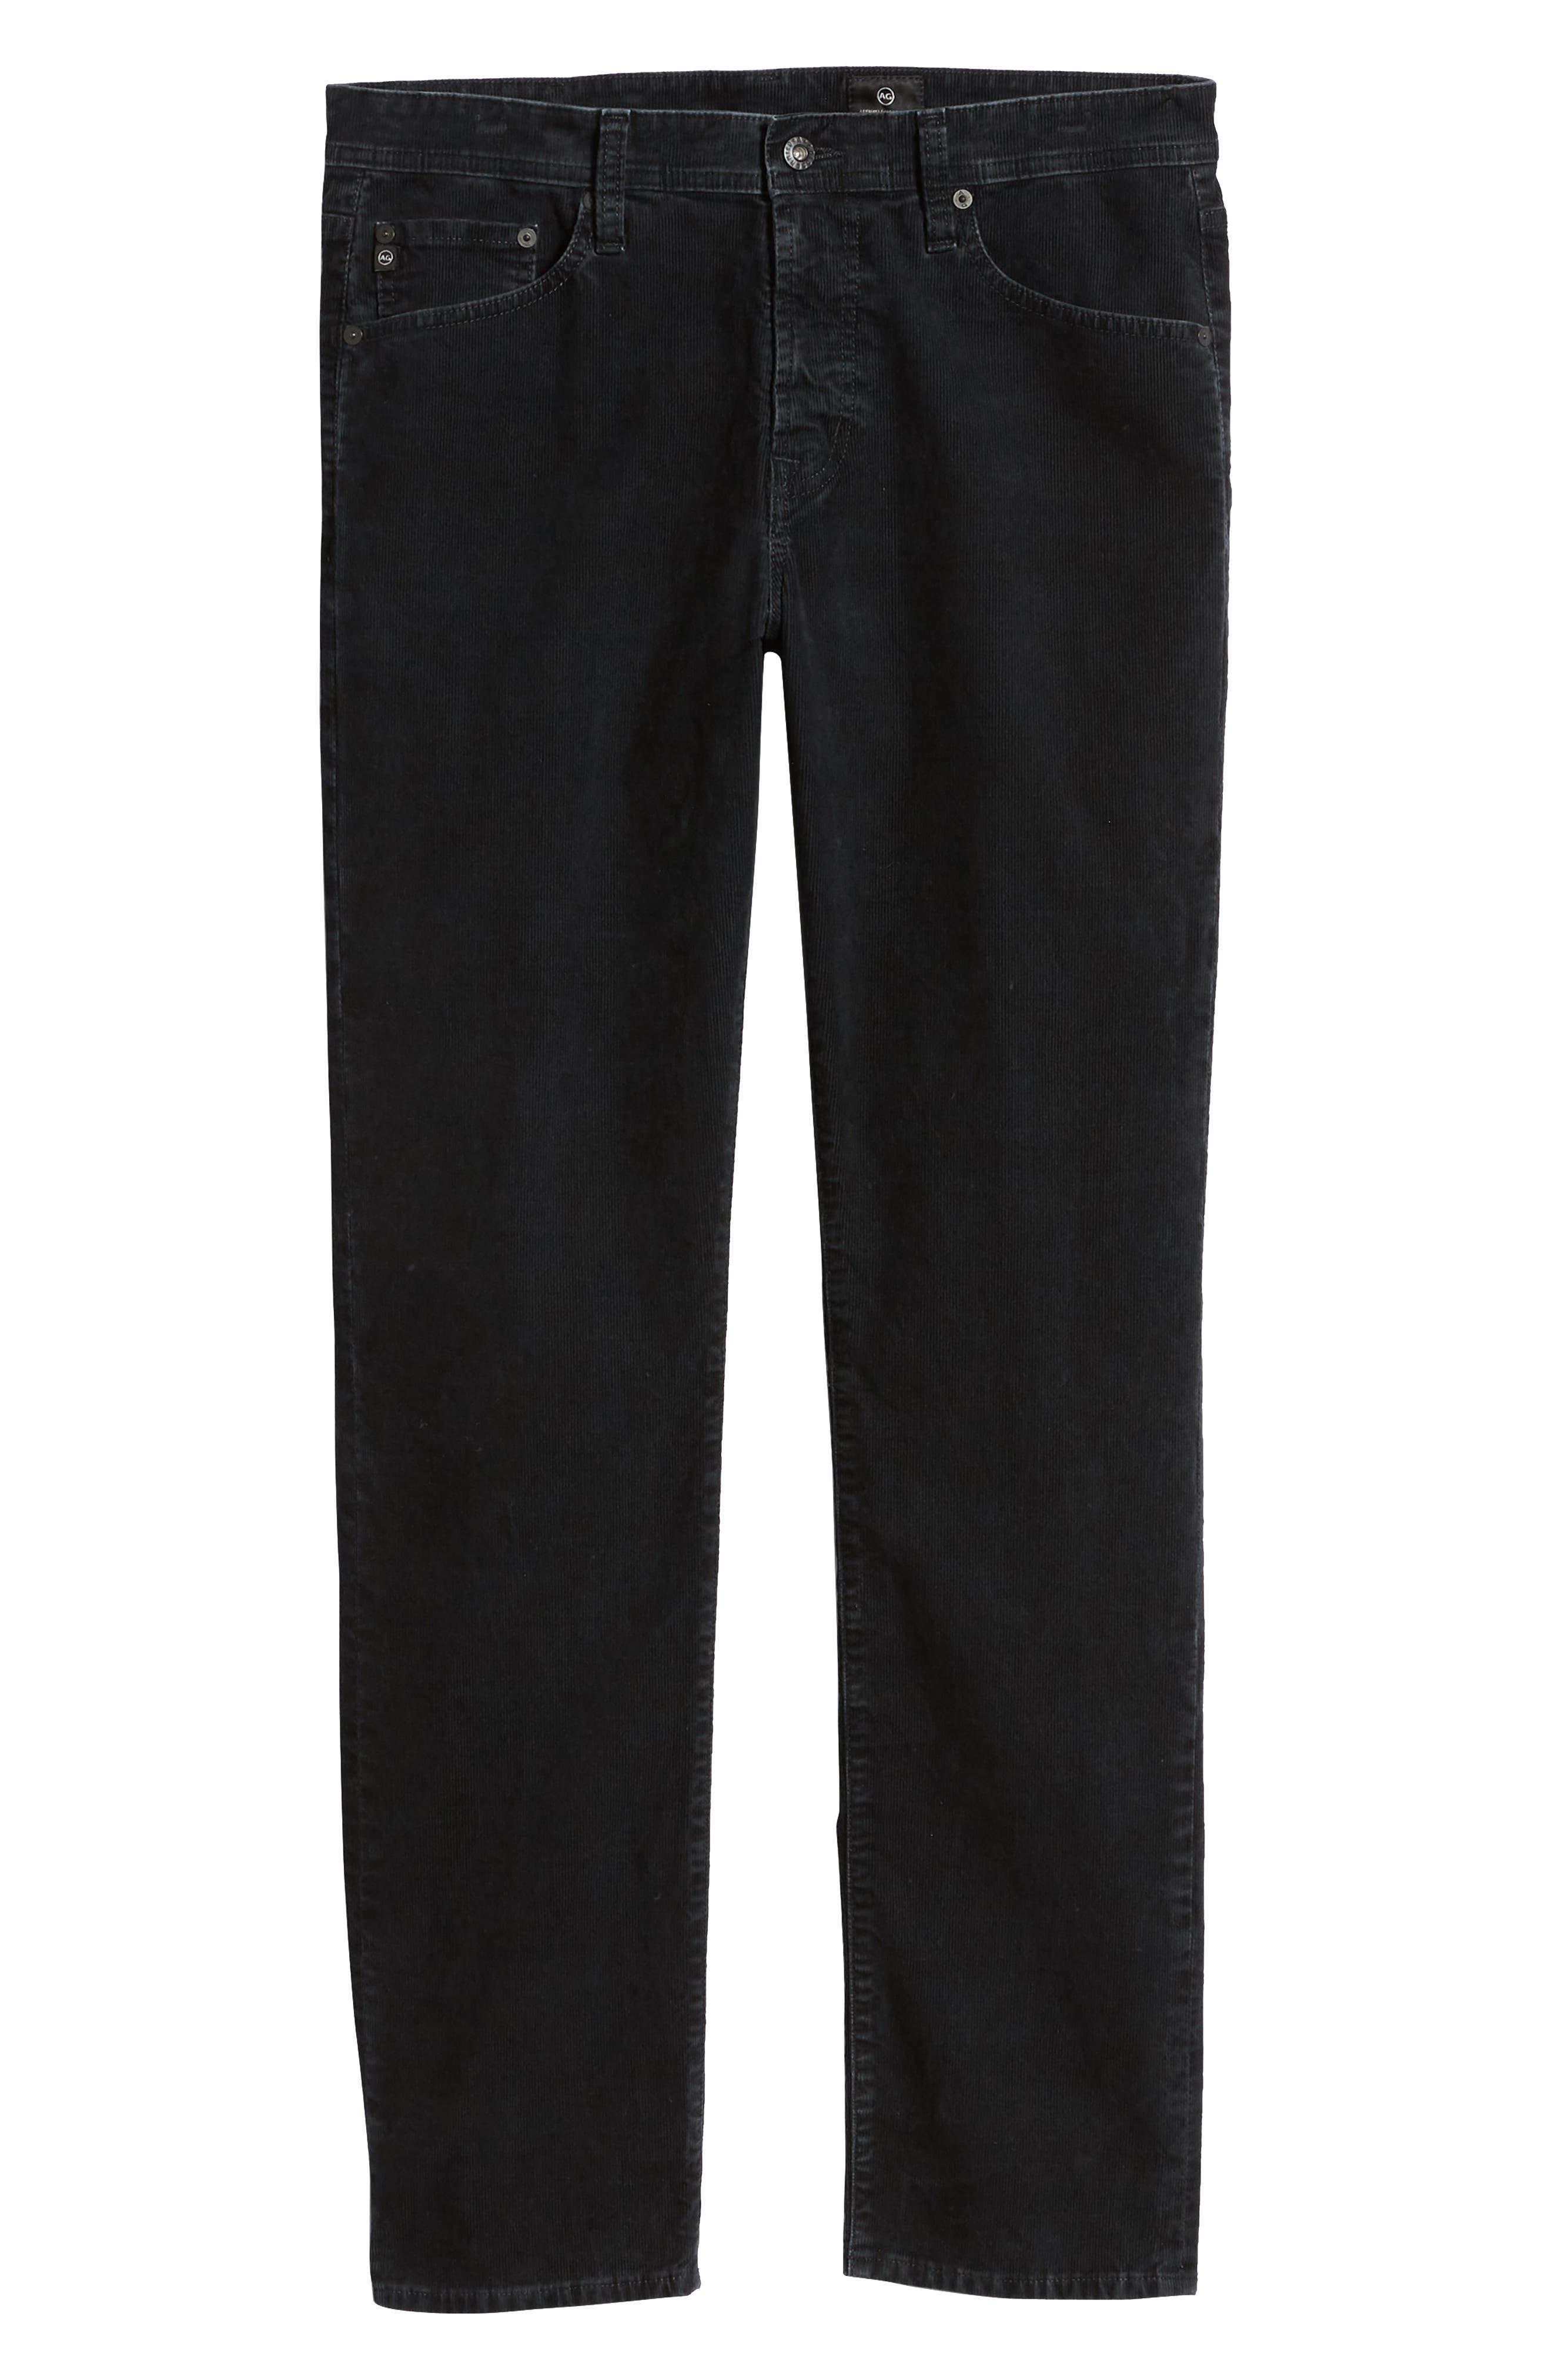 Everett Straight Leg Corduroy Pants,                             Alternate thumbnail 6, color,                             SULFUR ASH BLACK